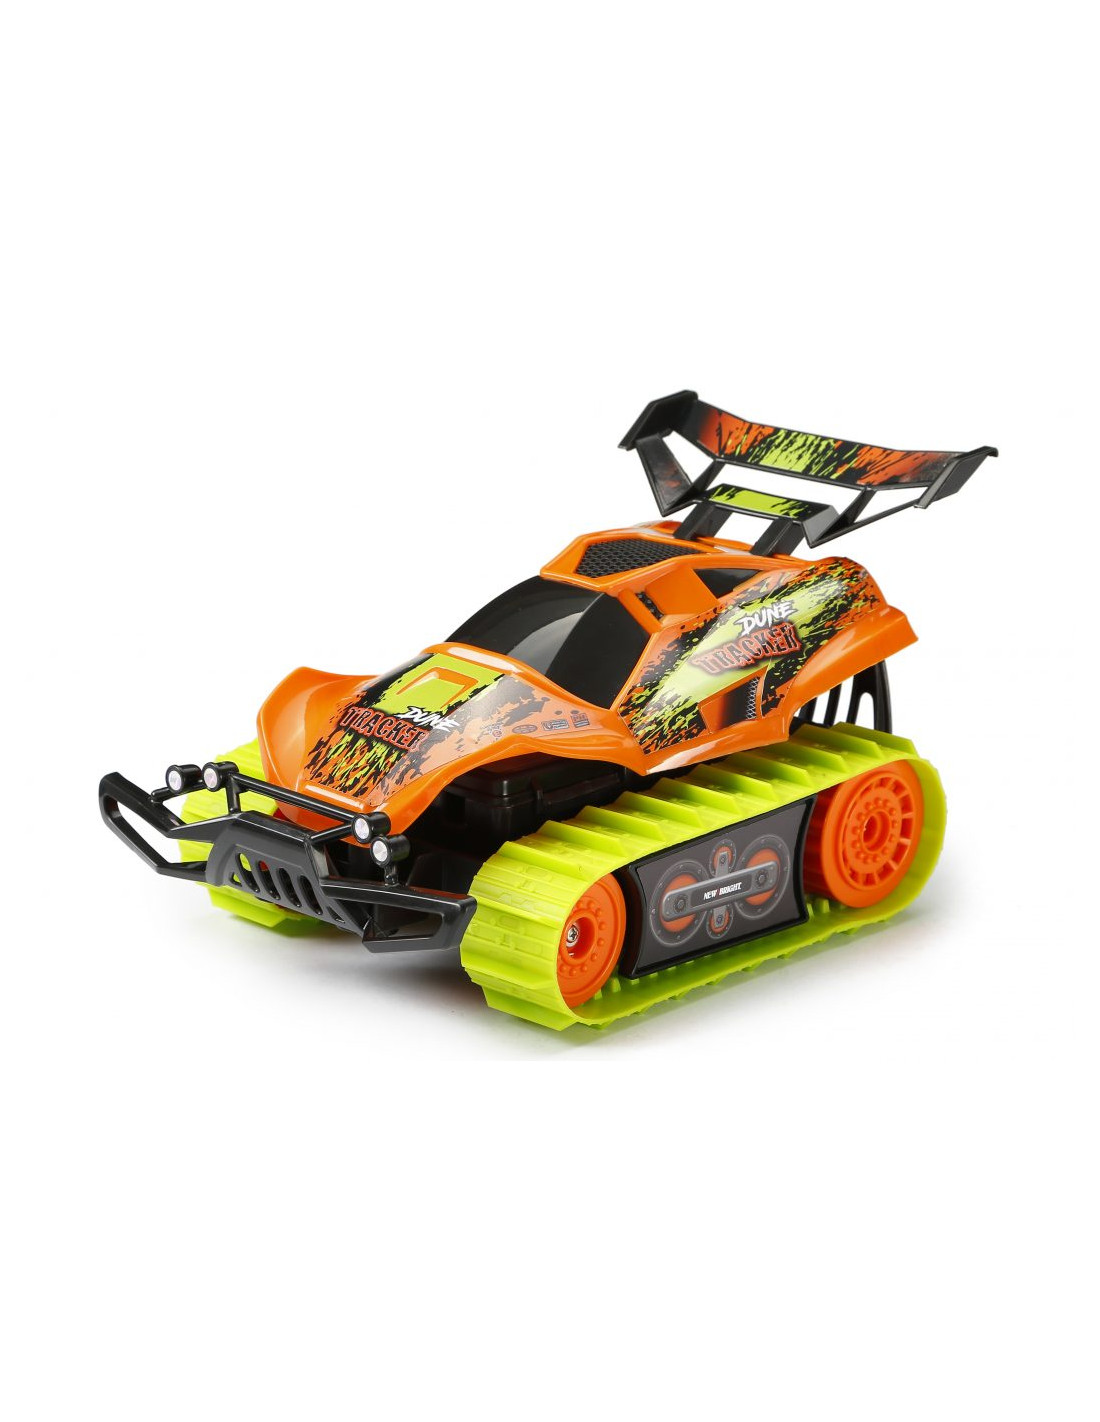 New Bright RC Charger Dune Tracker